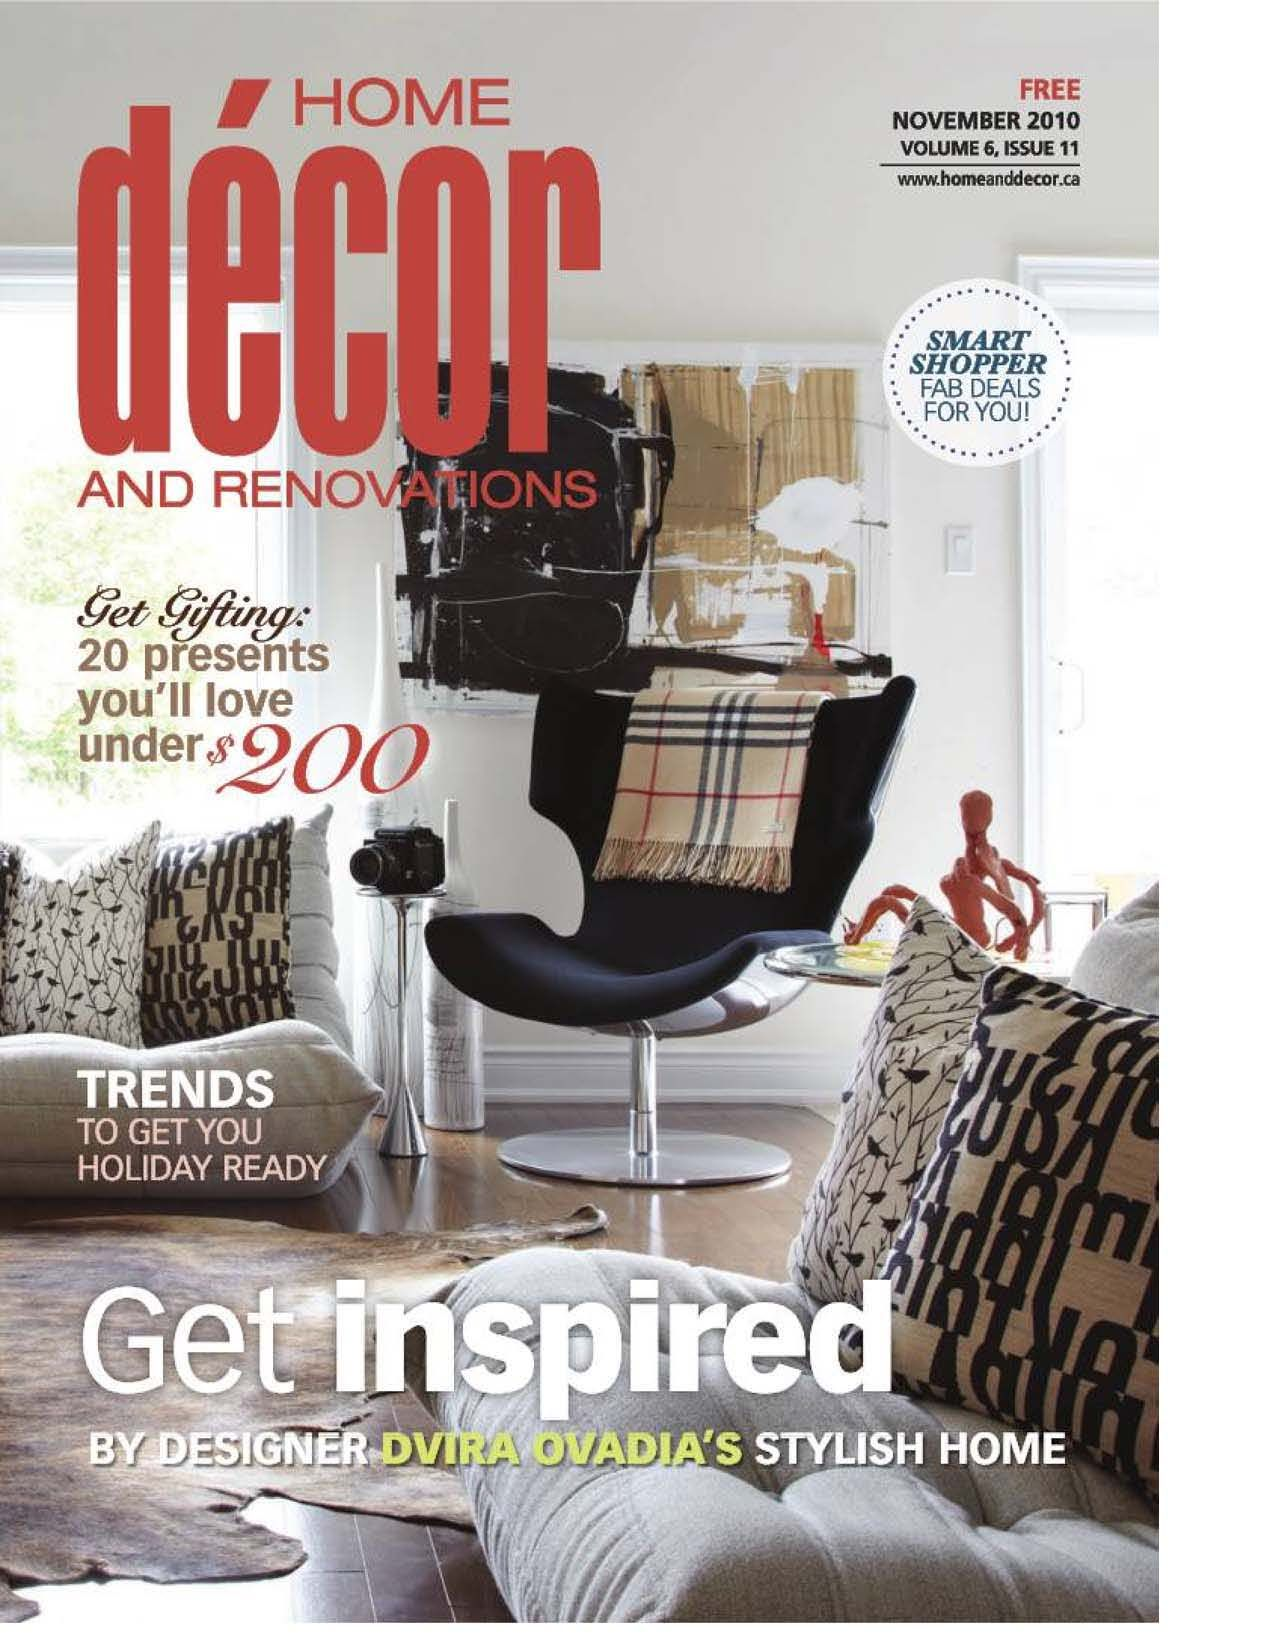 Online home decor magazine | Home and house style | Pinterest ...